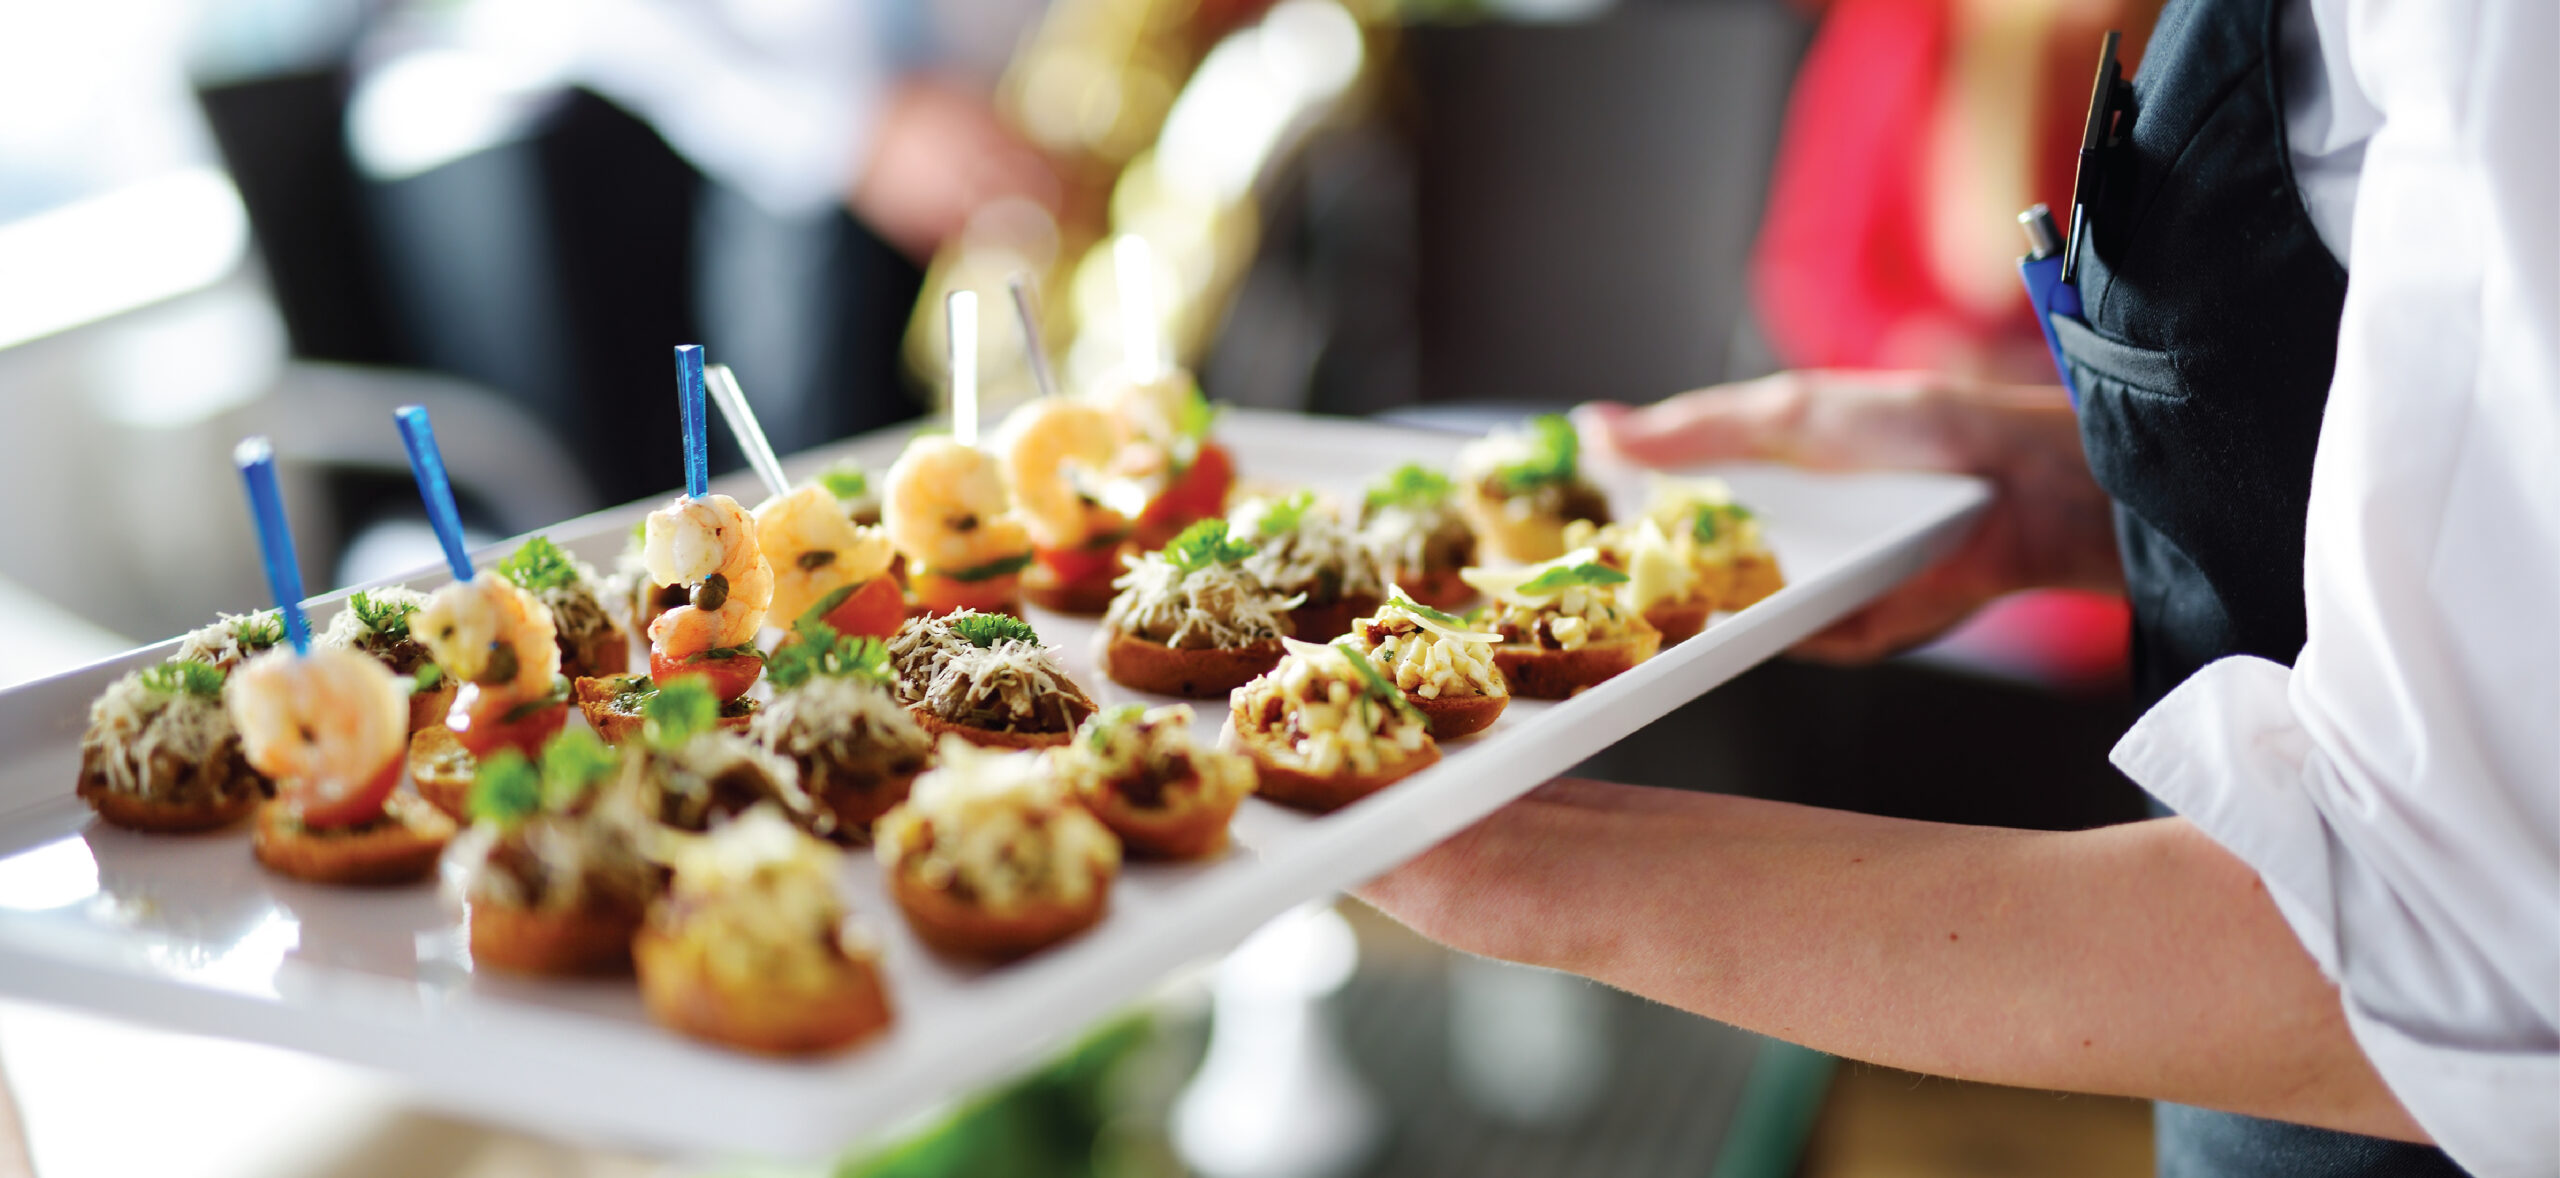 Hospitality Staffing Solutions That Deliver the Best Workers